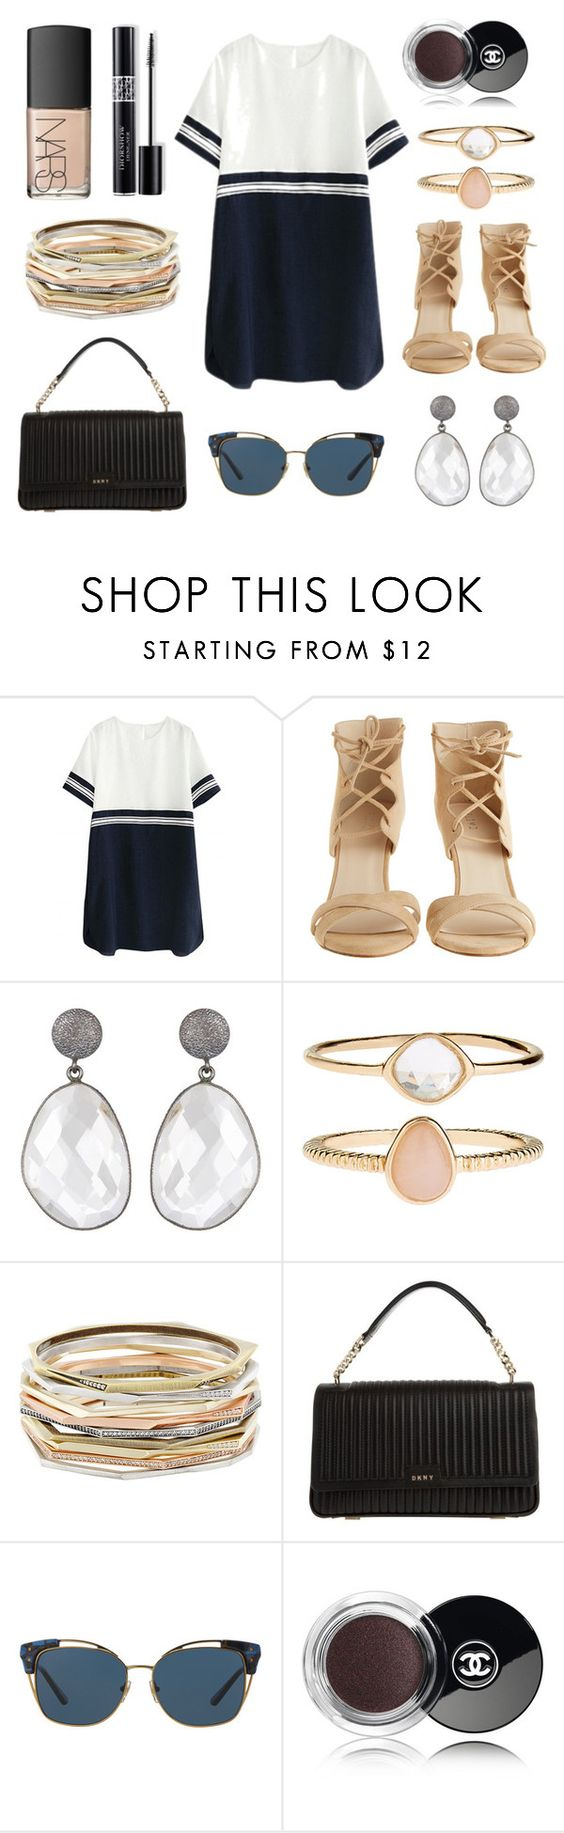 """""""Aye aye"""" by beetbij ❤ liked on Polyvore featuring Plomo, Accessorize, Kendra Scott, DKNY, Tory Burch, Chanel, NARS Cosmetics and Christian Dior"""